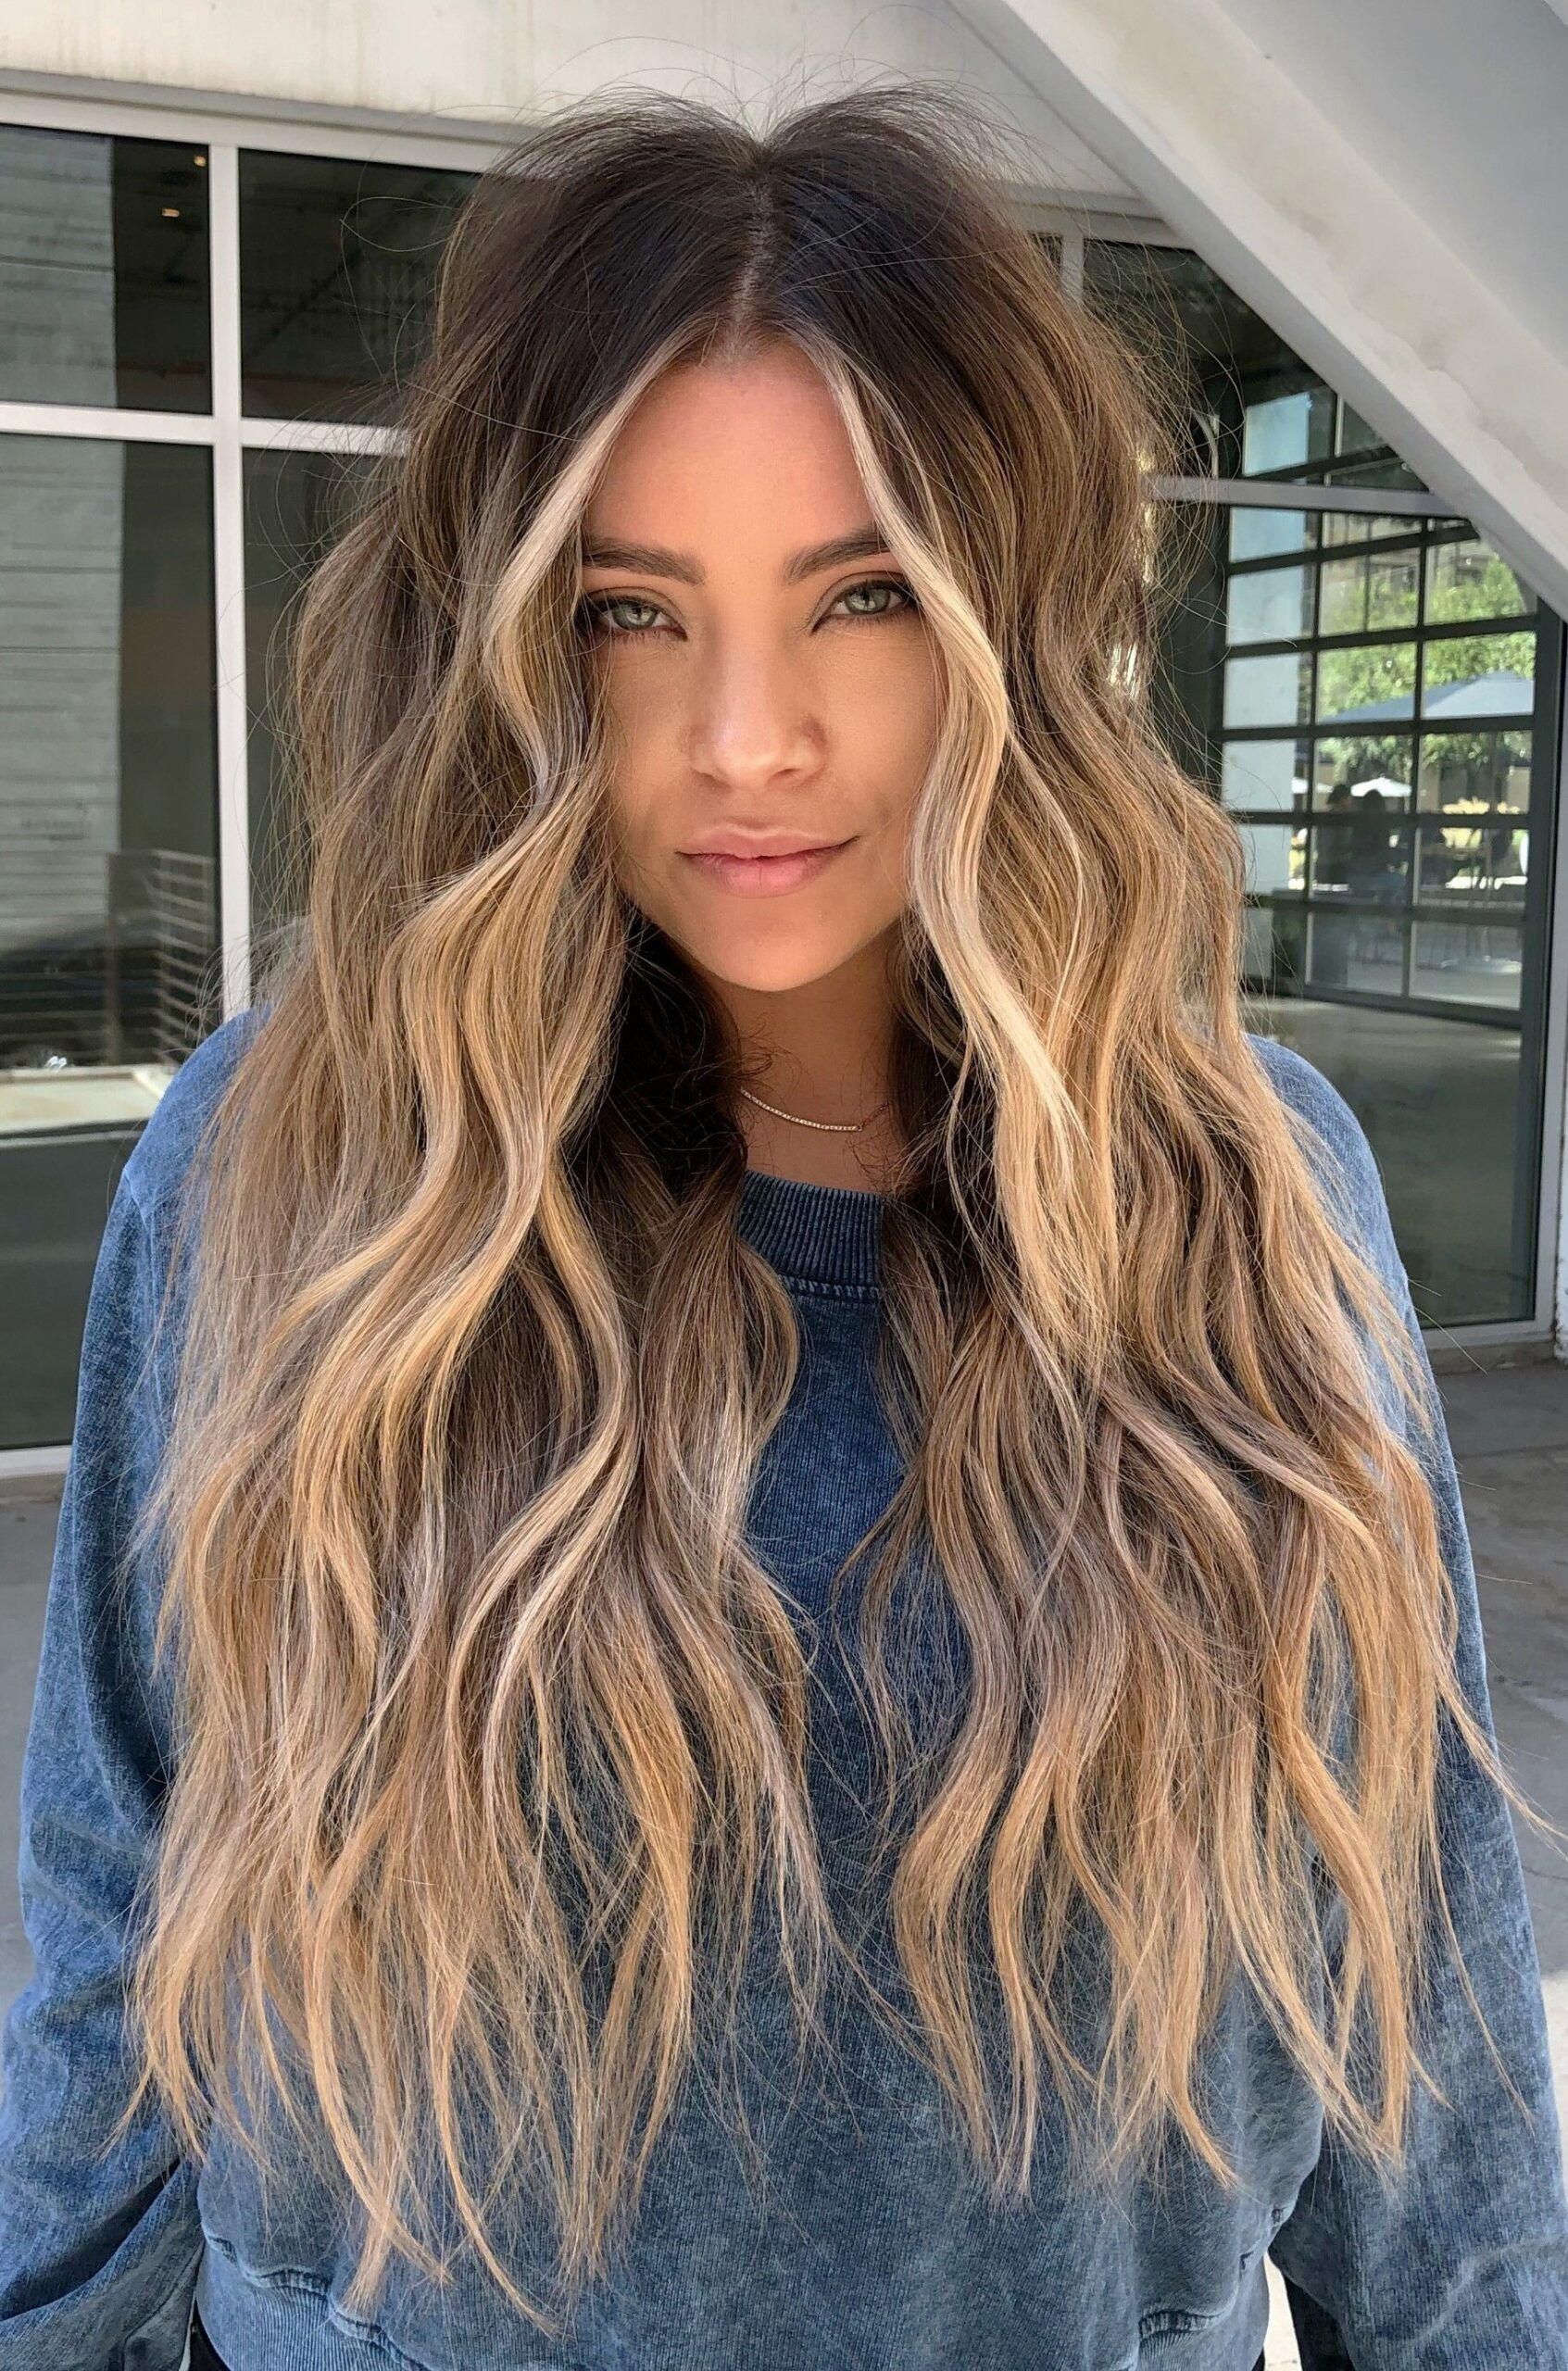 Having A Bronde Moment, #Bronde #Moment